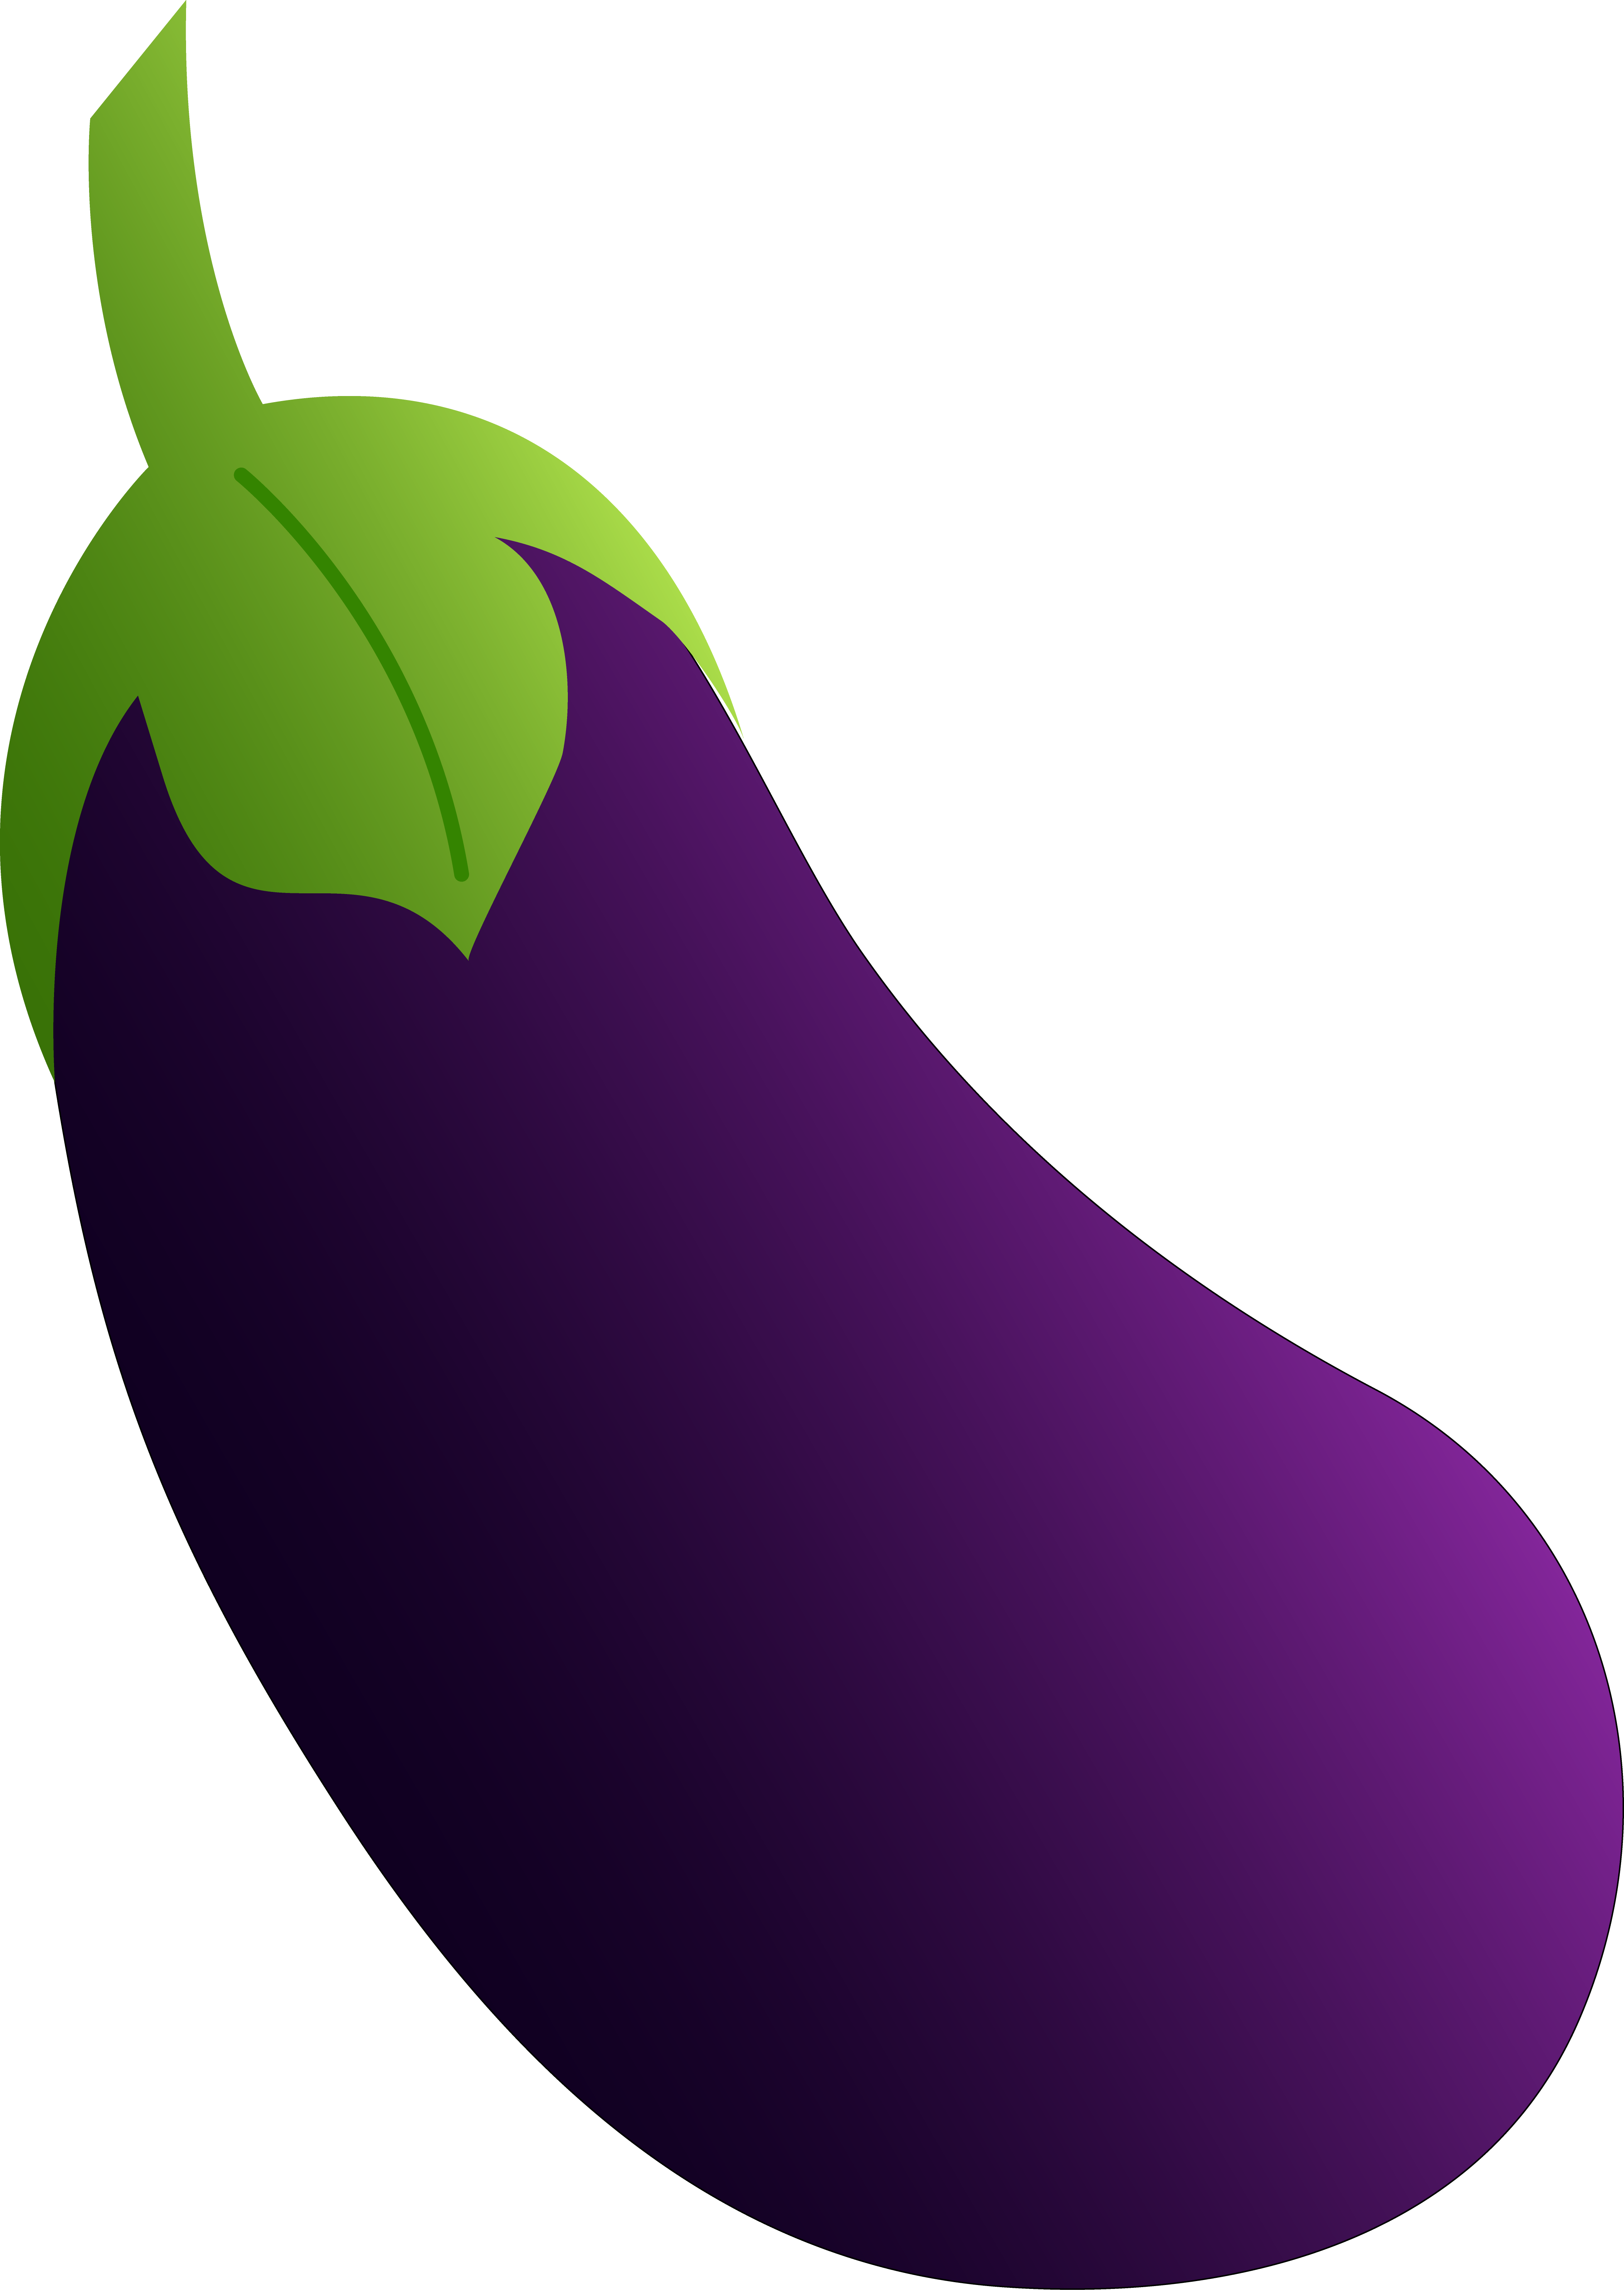 Aubergine a project by. Eggplant clipart single vegetable